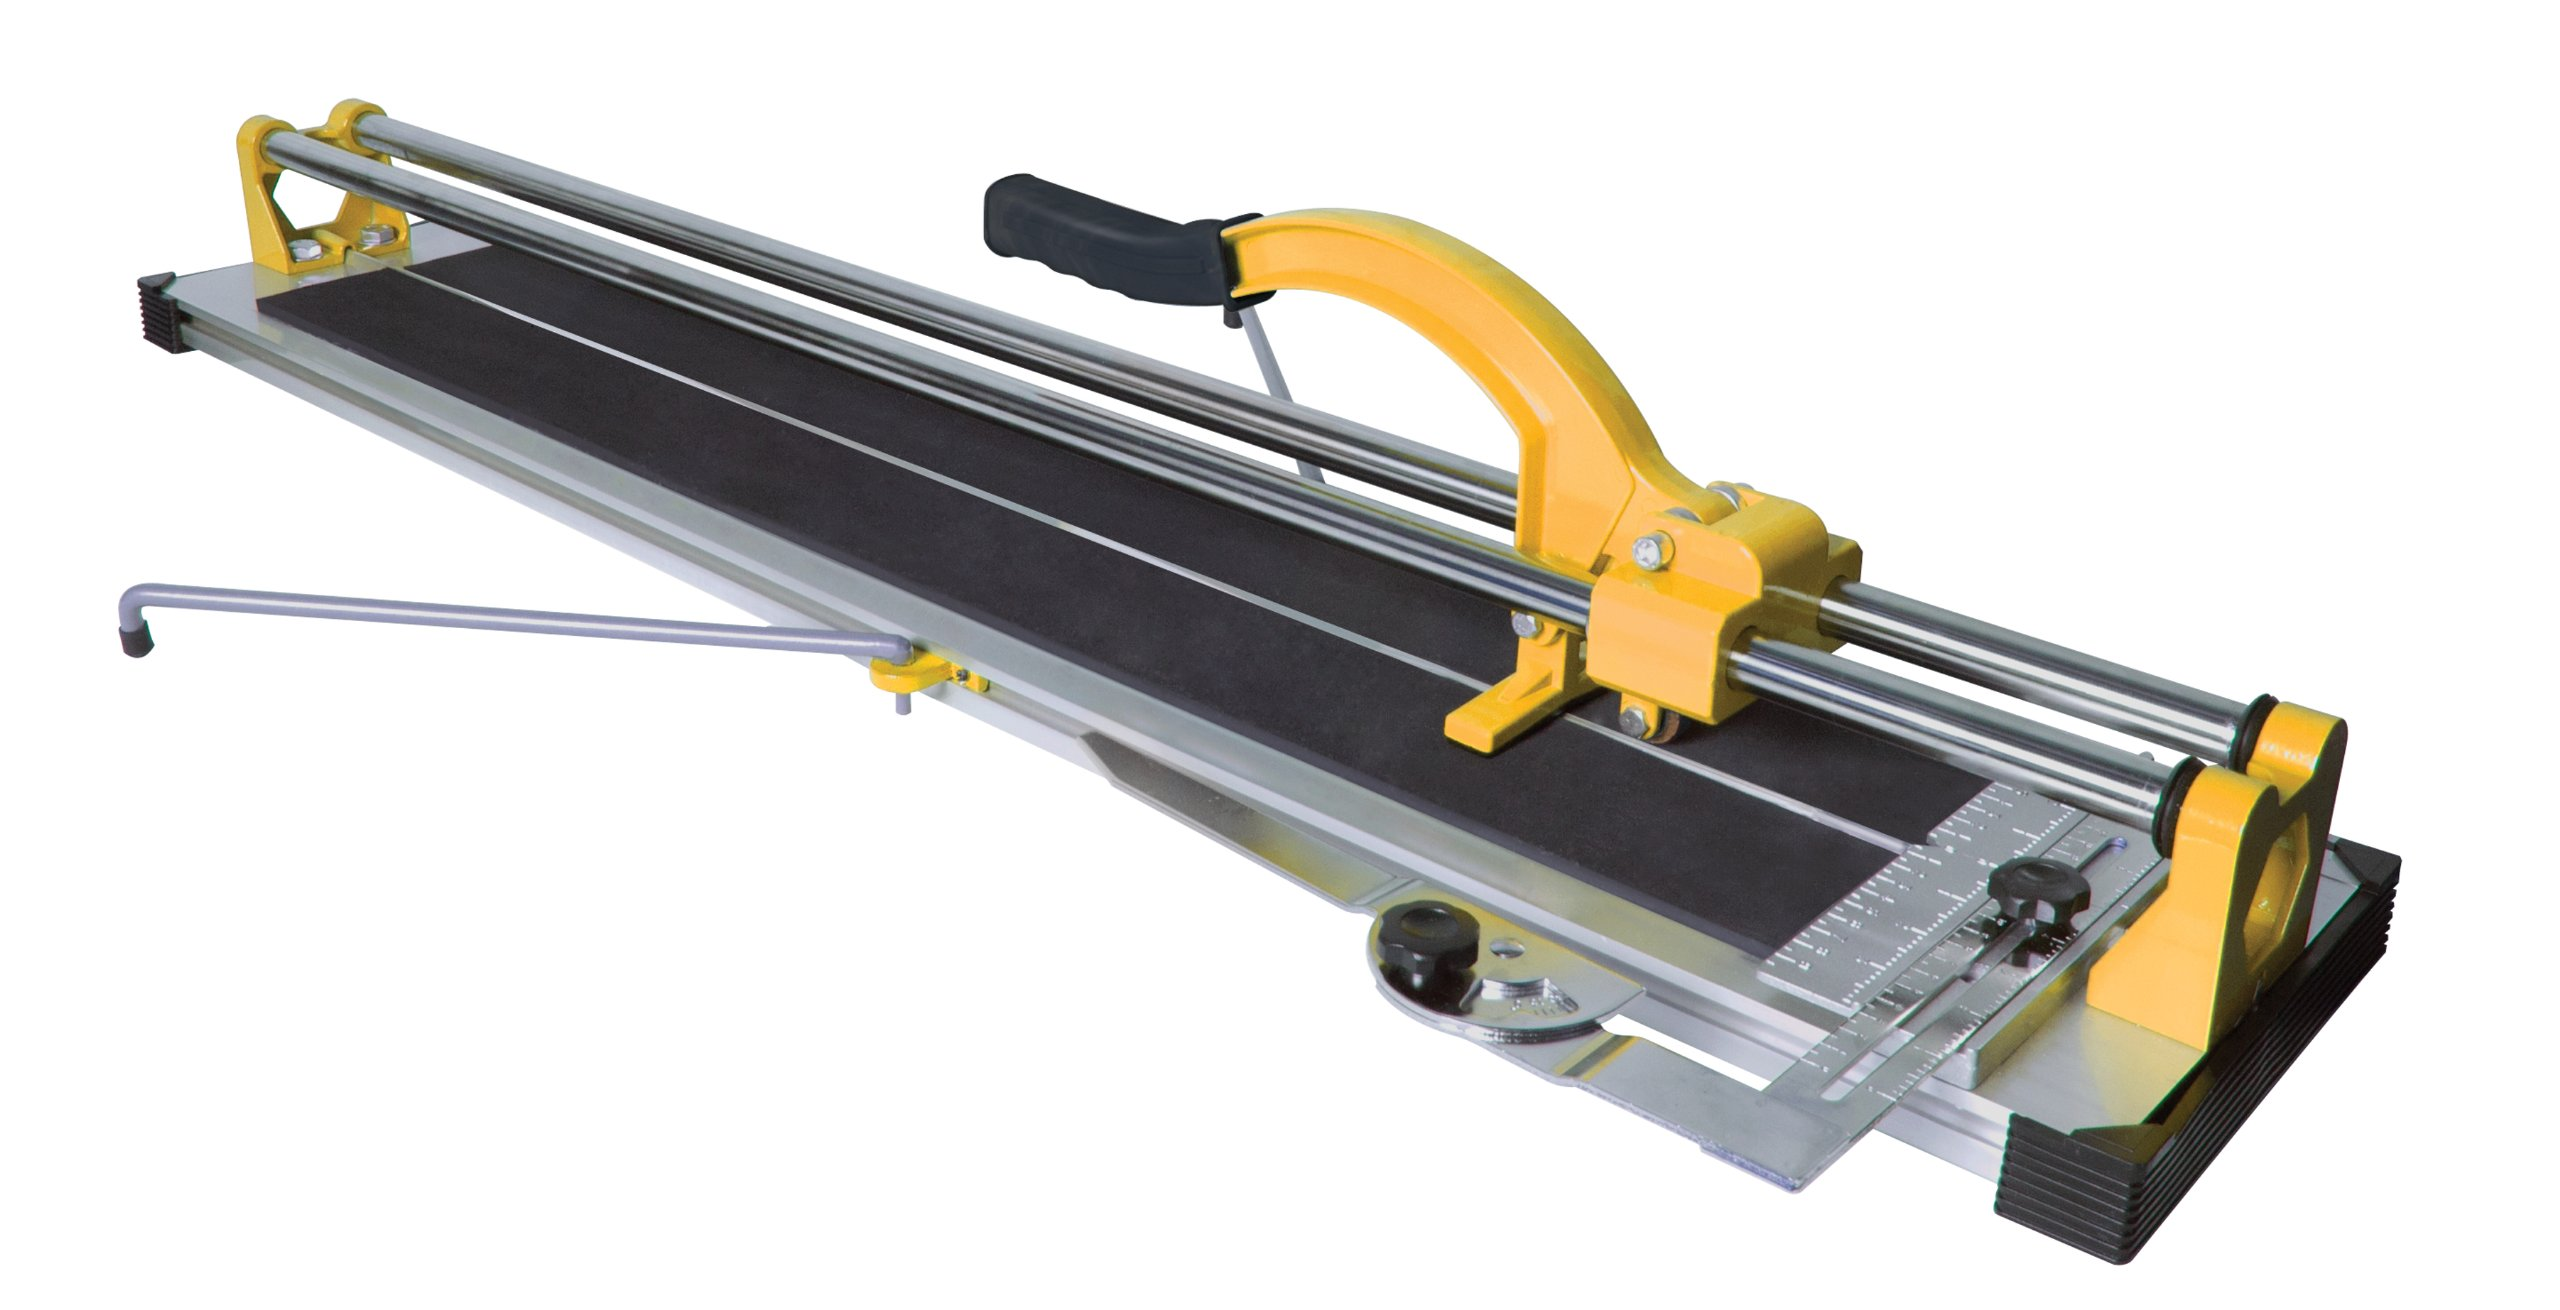 QEP 10630Q 24-Inch Manual Tile Cutter with Tungsten Carbide Scoring Wheel for Porcelain and Ceramic Tiles by QEP